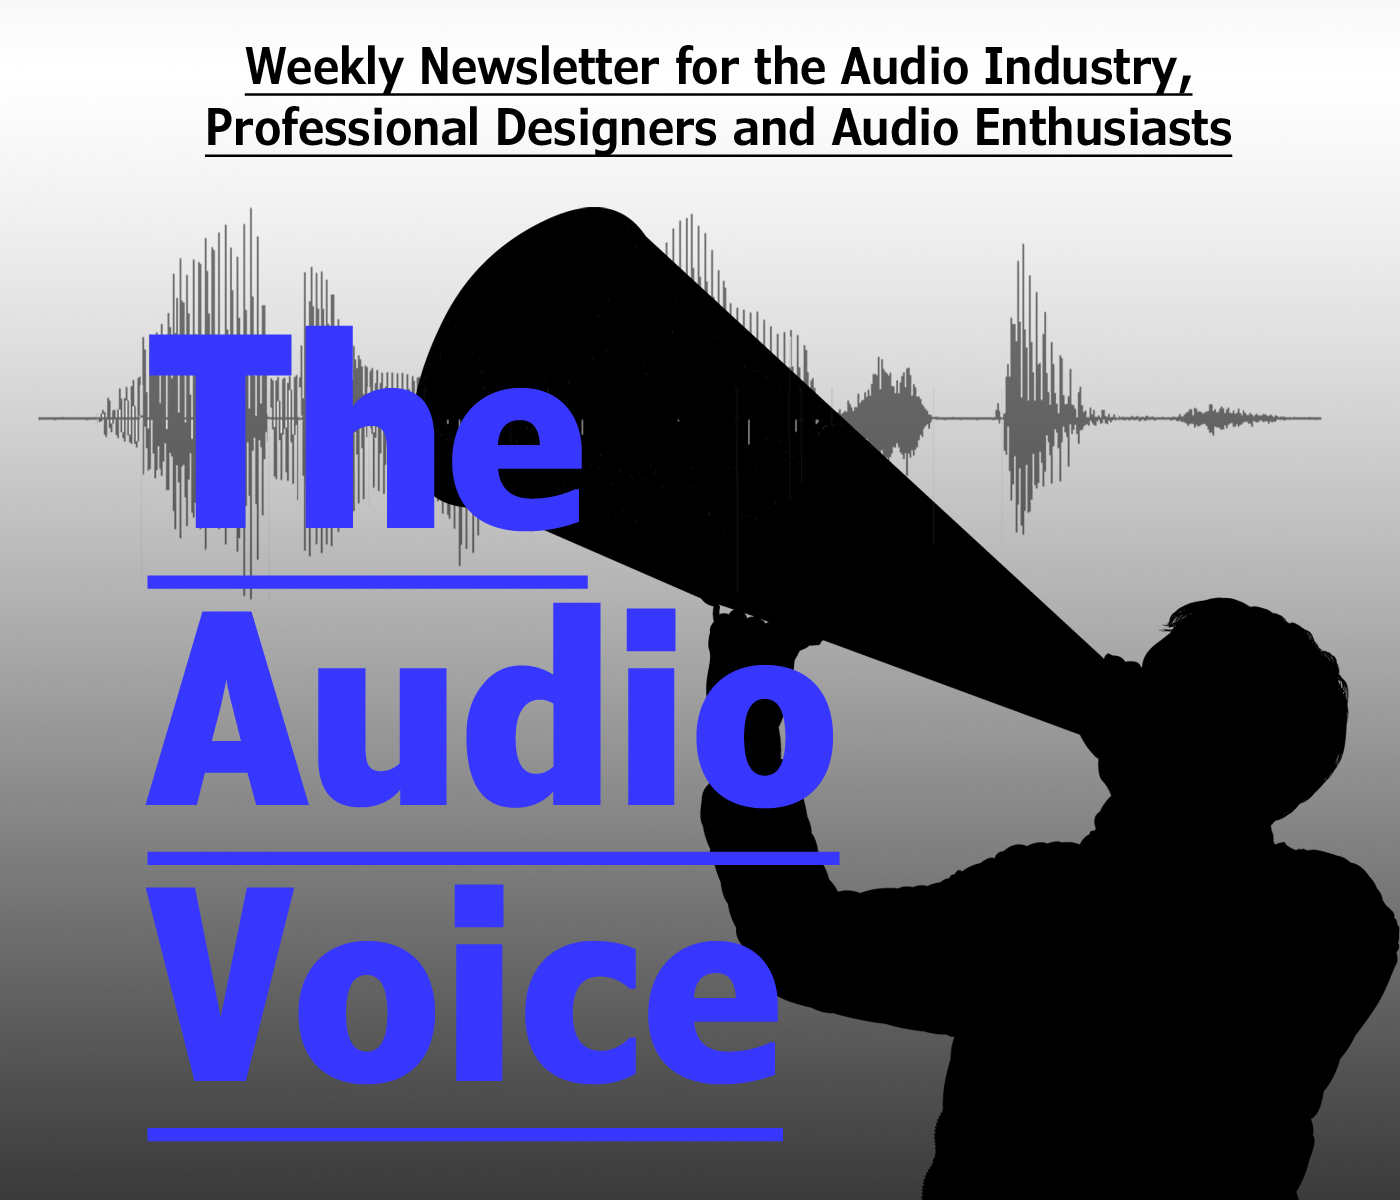 The Audio Voice Weekly Newsletter For Audioxpress And Coil Amplifier Classes From A To H Circuit Cellar Our Addresses Interests Of Both Readership Communities Industry News Trends